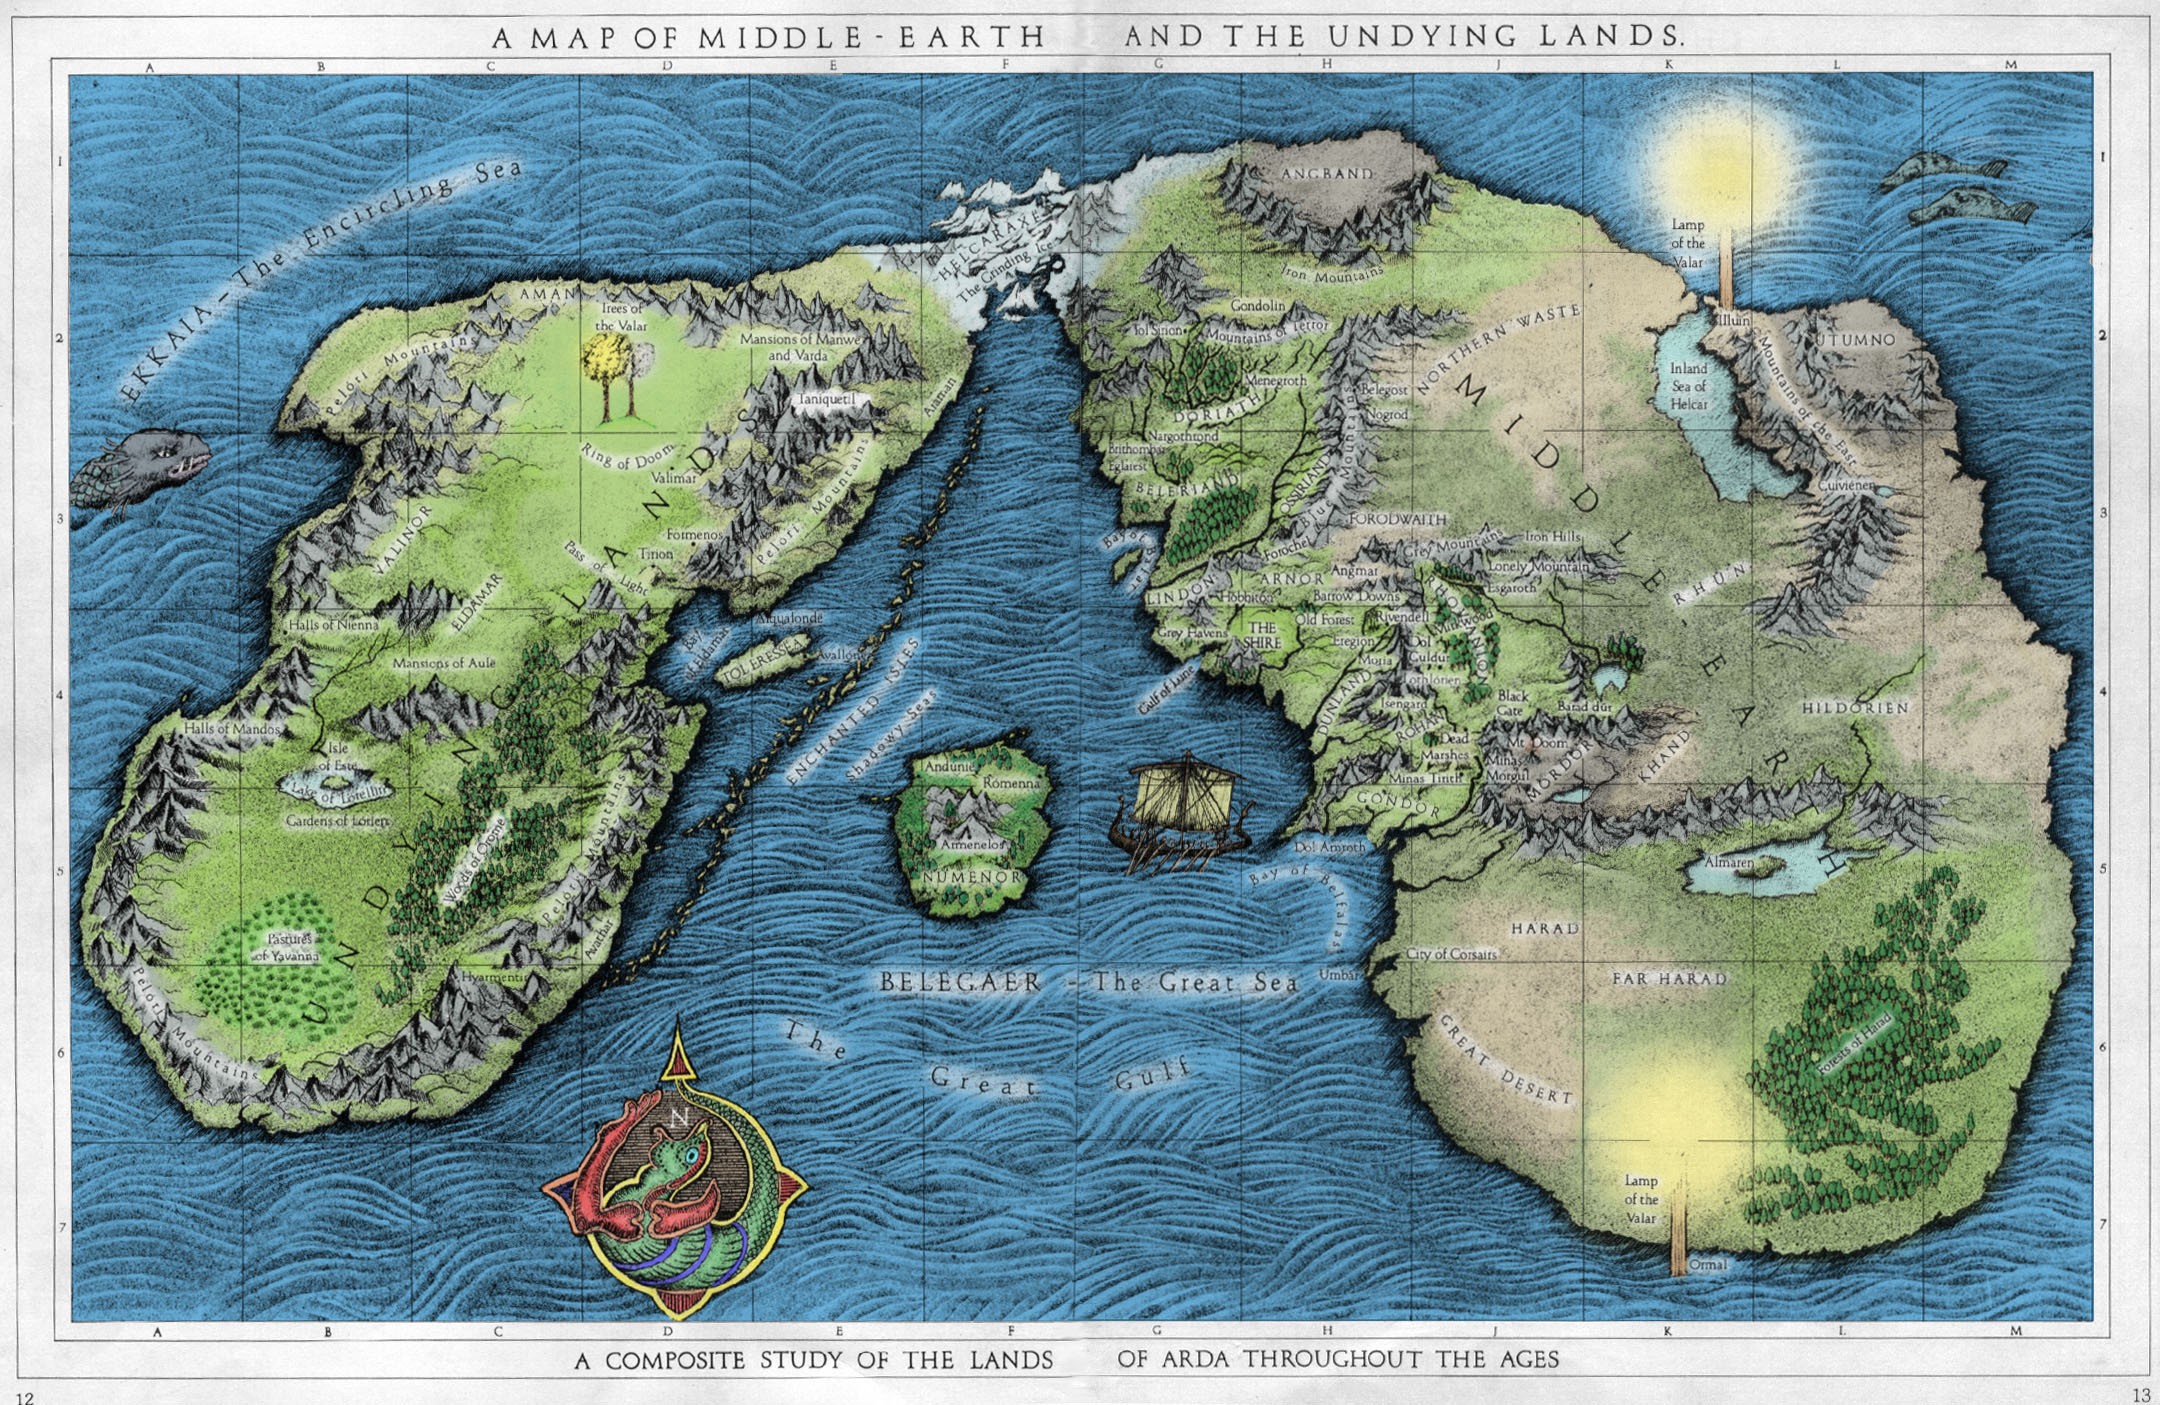 a_map_of_middle-earth_and_the_undying_lands_color_1413736722.jpeg_2160x1405